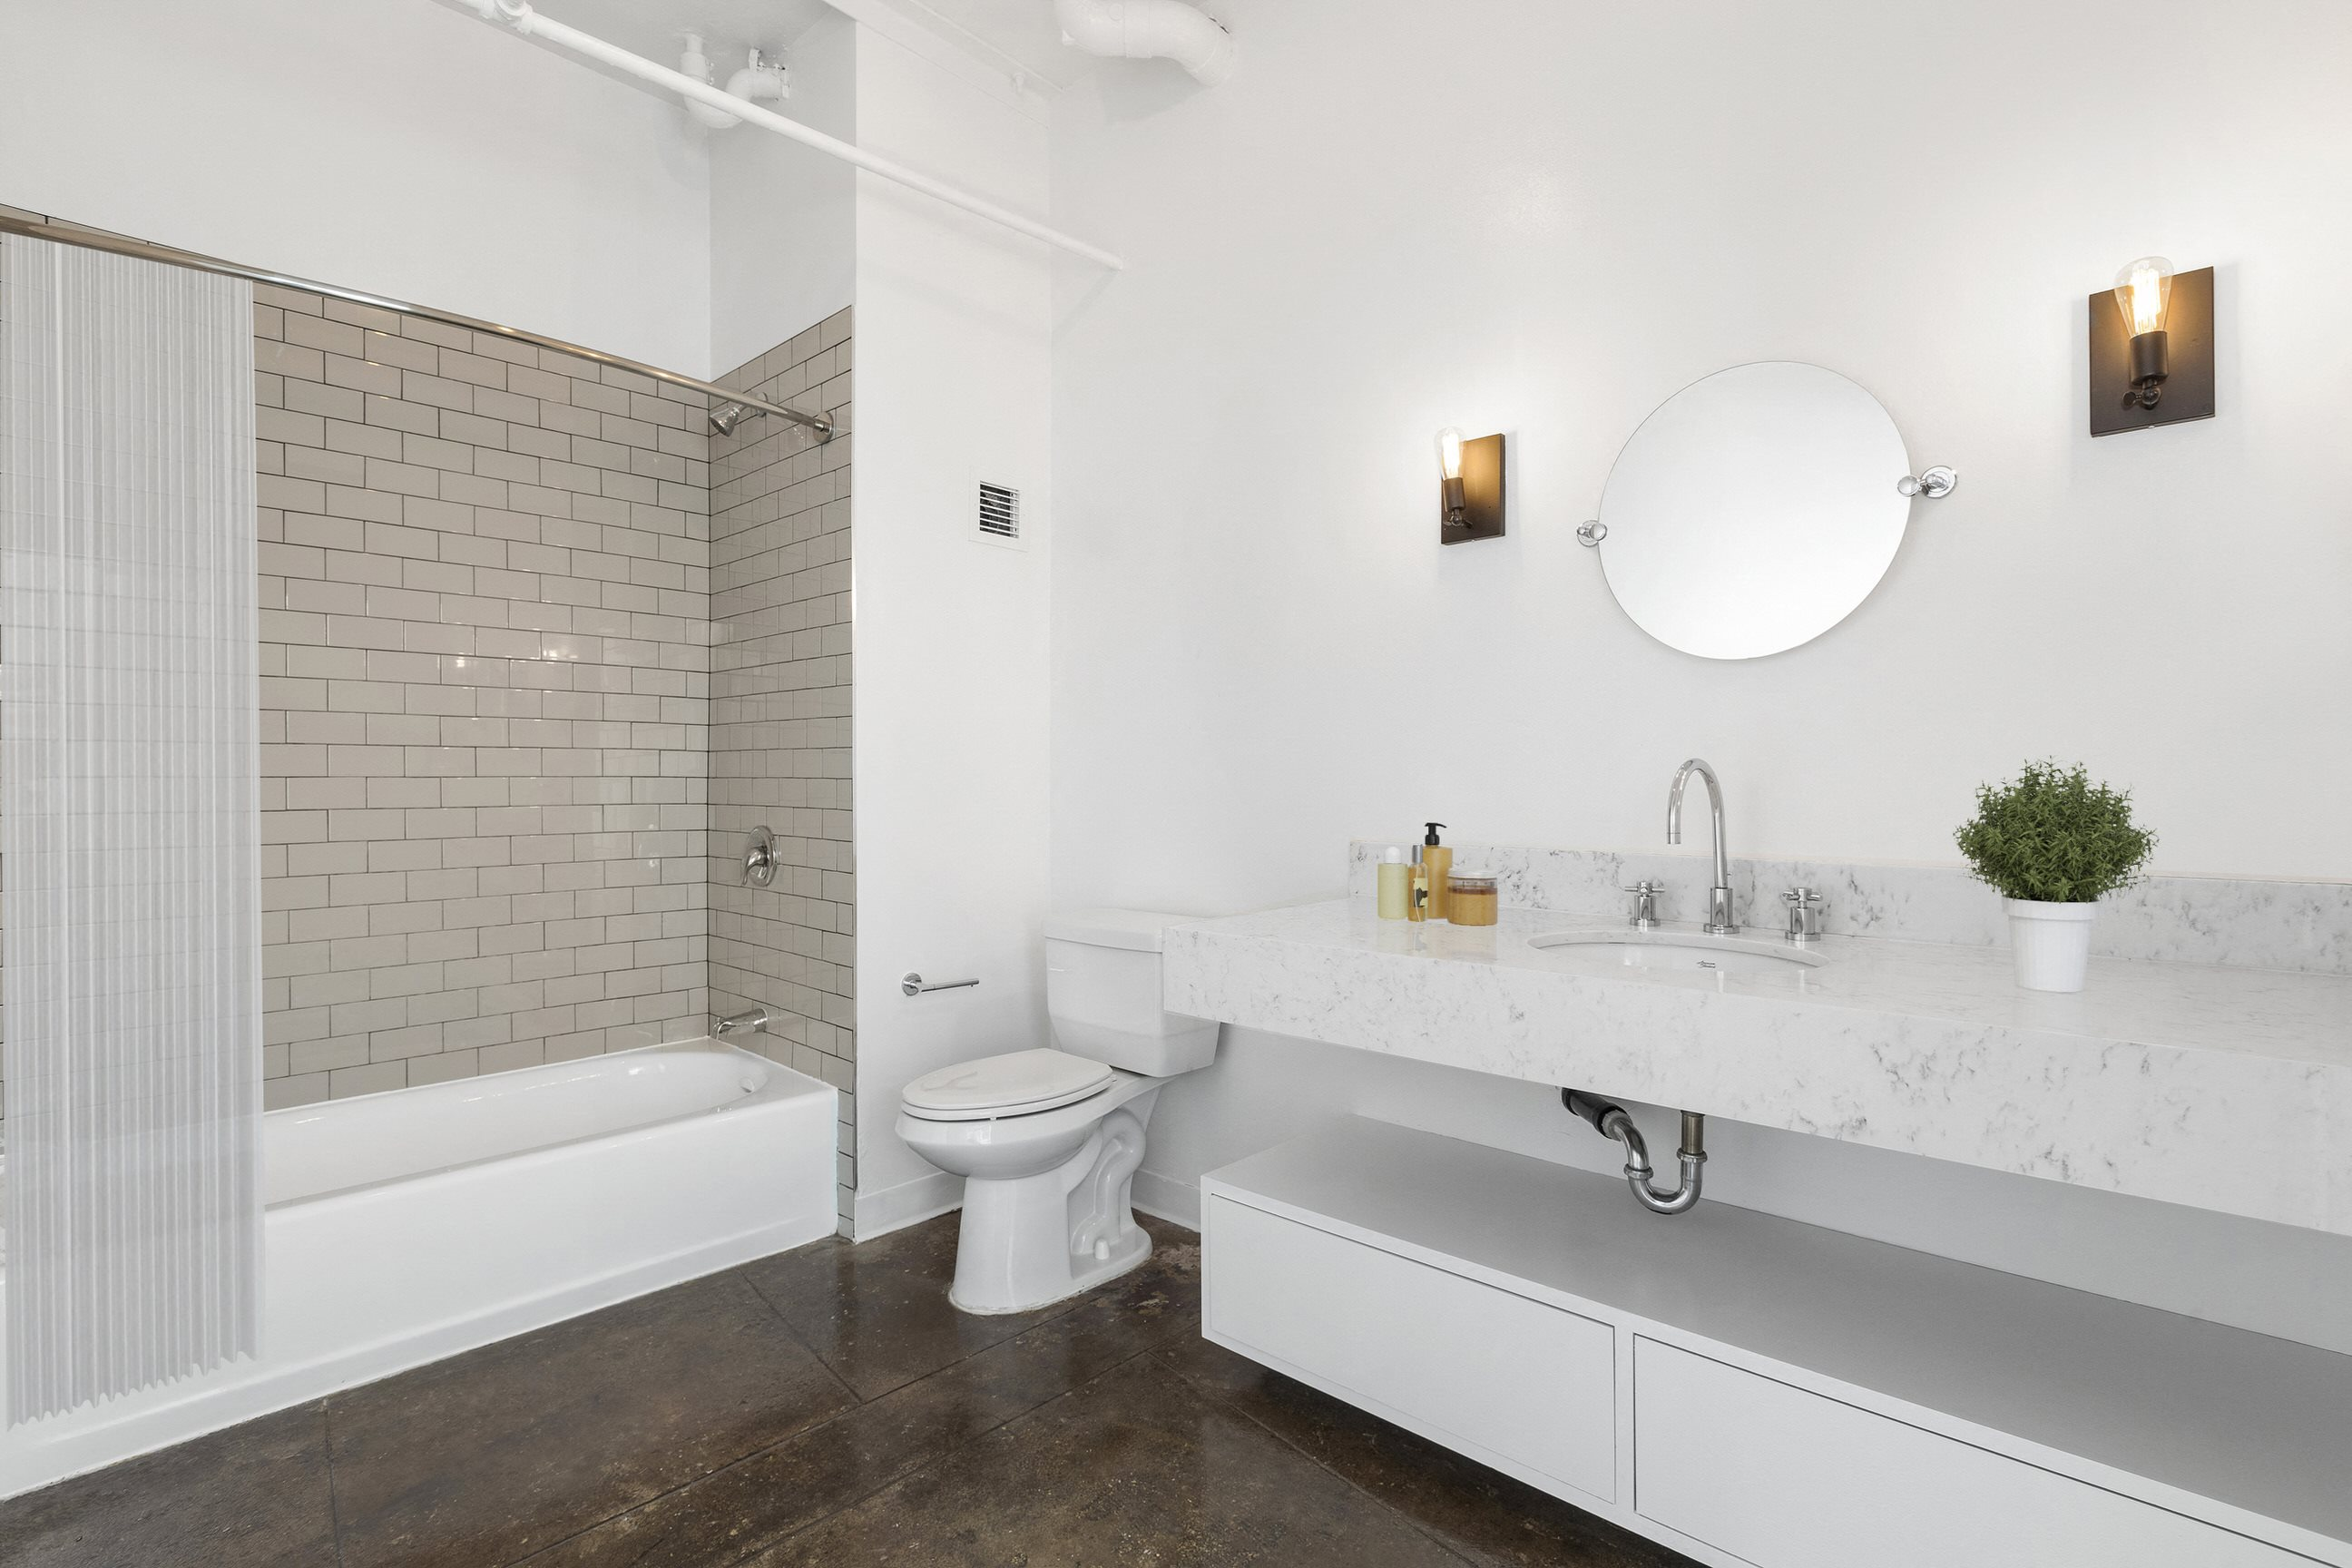 Downtown LA Apartments-San Fernando Building Lofts Bathroom with Gorgeous Modern Countertops, Large Shower Area, and Floating Cabinet Storage